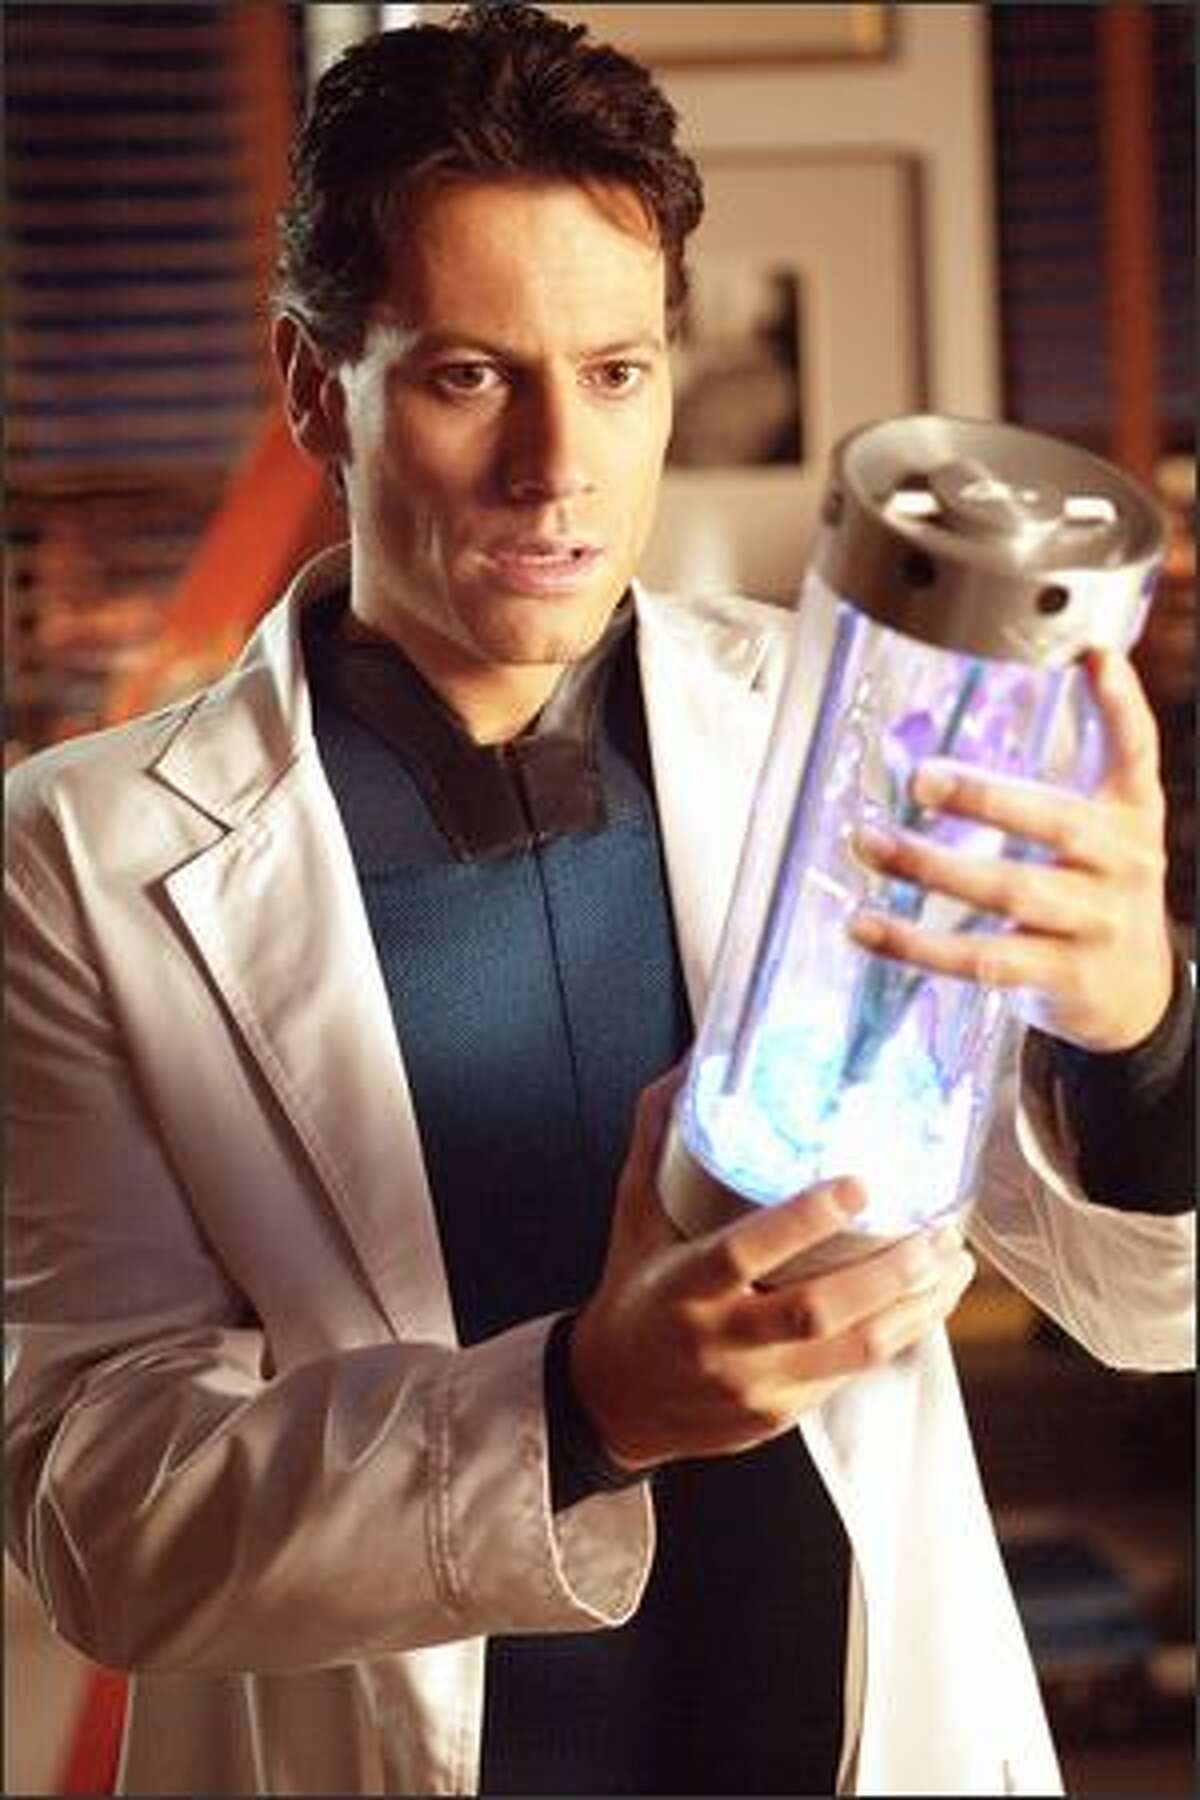 Ioan Gruffudd portrays scientific genius Reed Richards, aka Mr. Fantastic, who gains the ability to stretch and reshape his body.